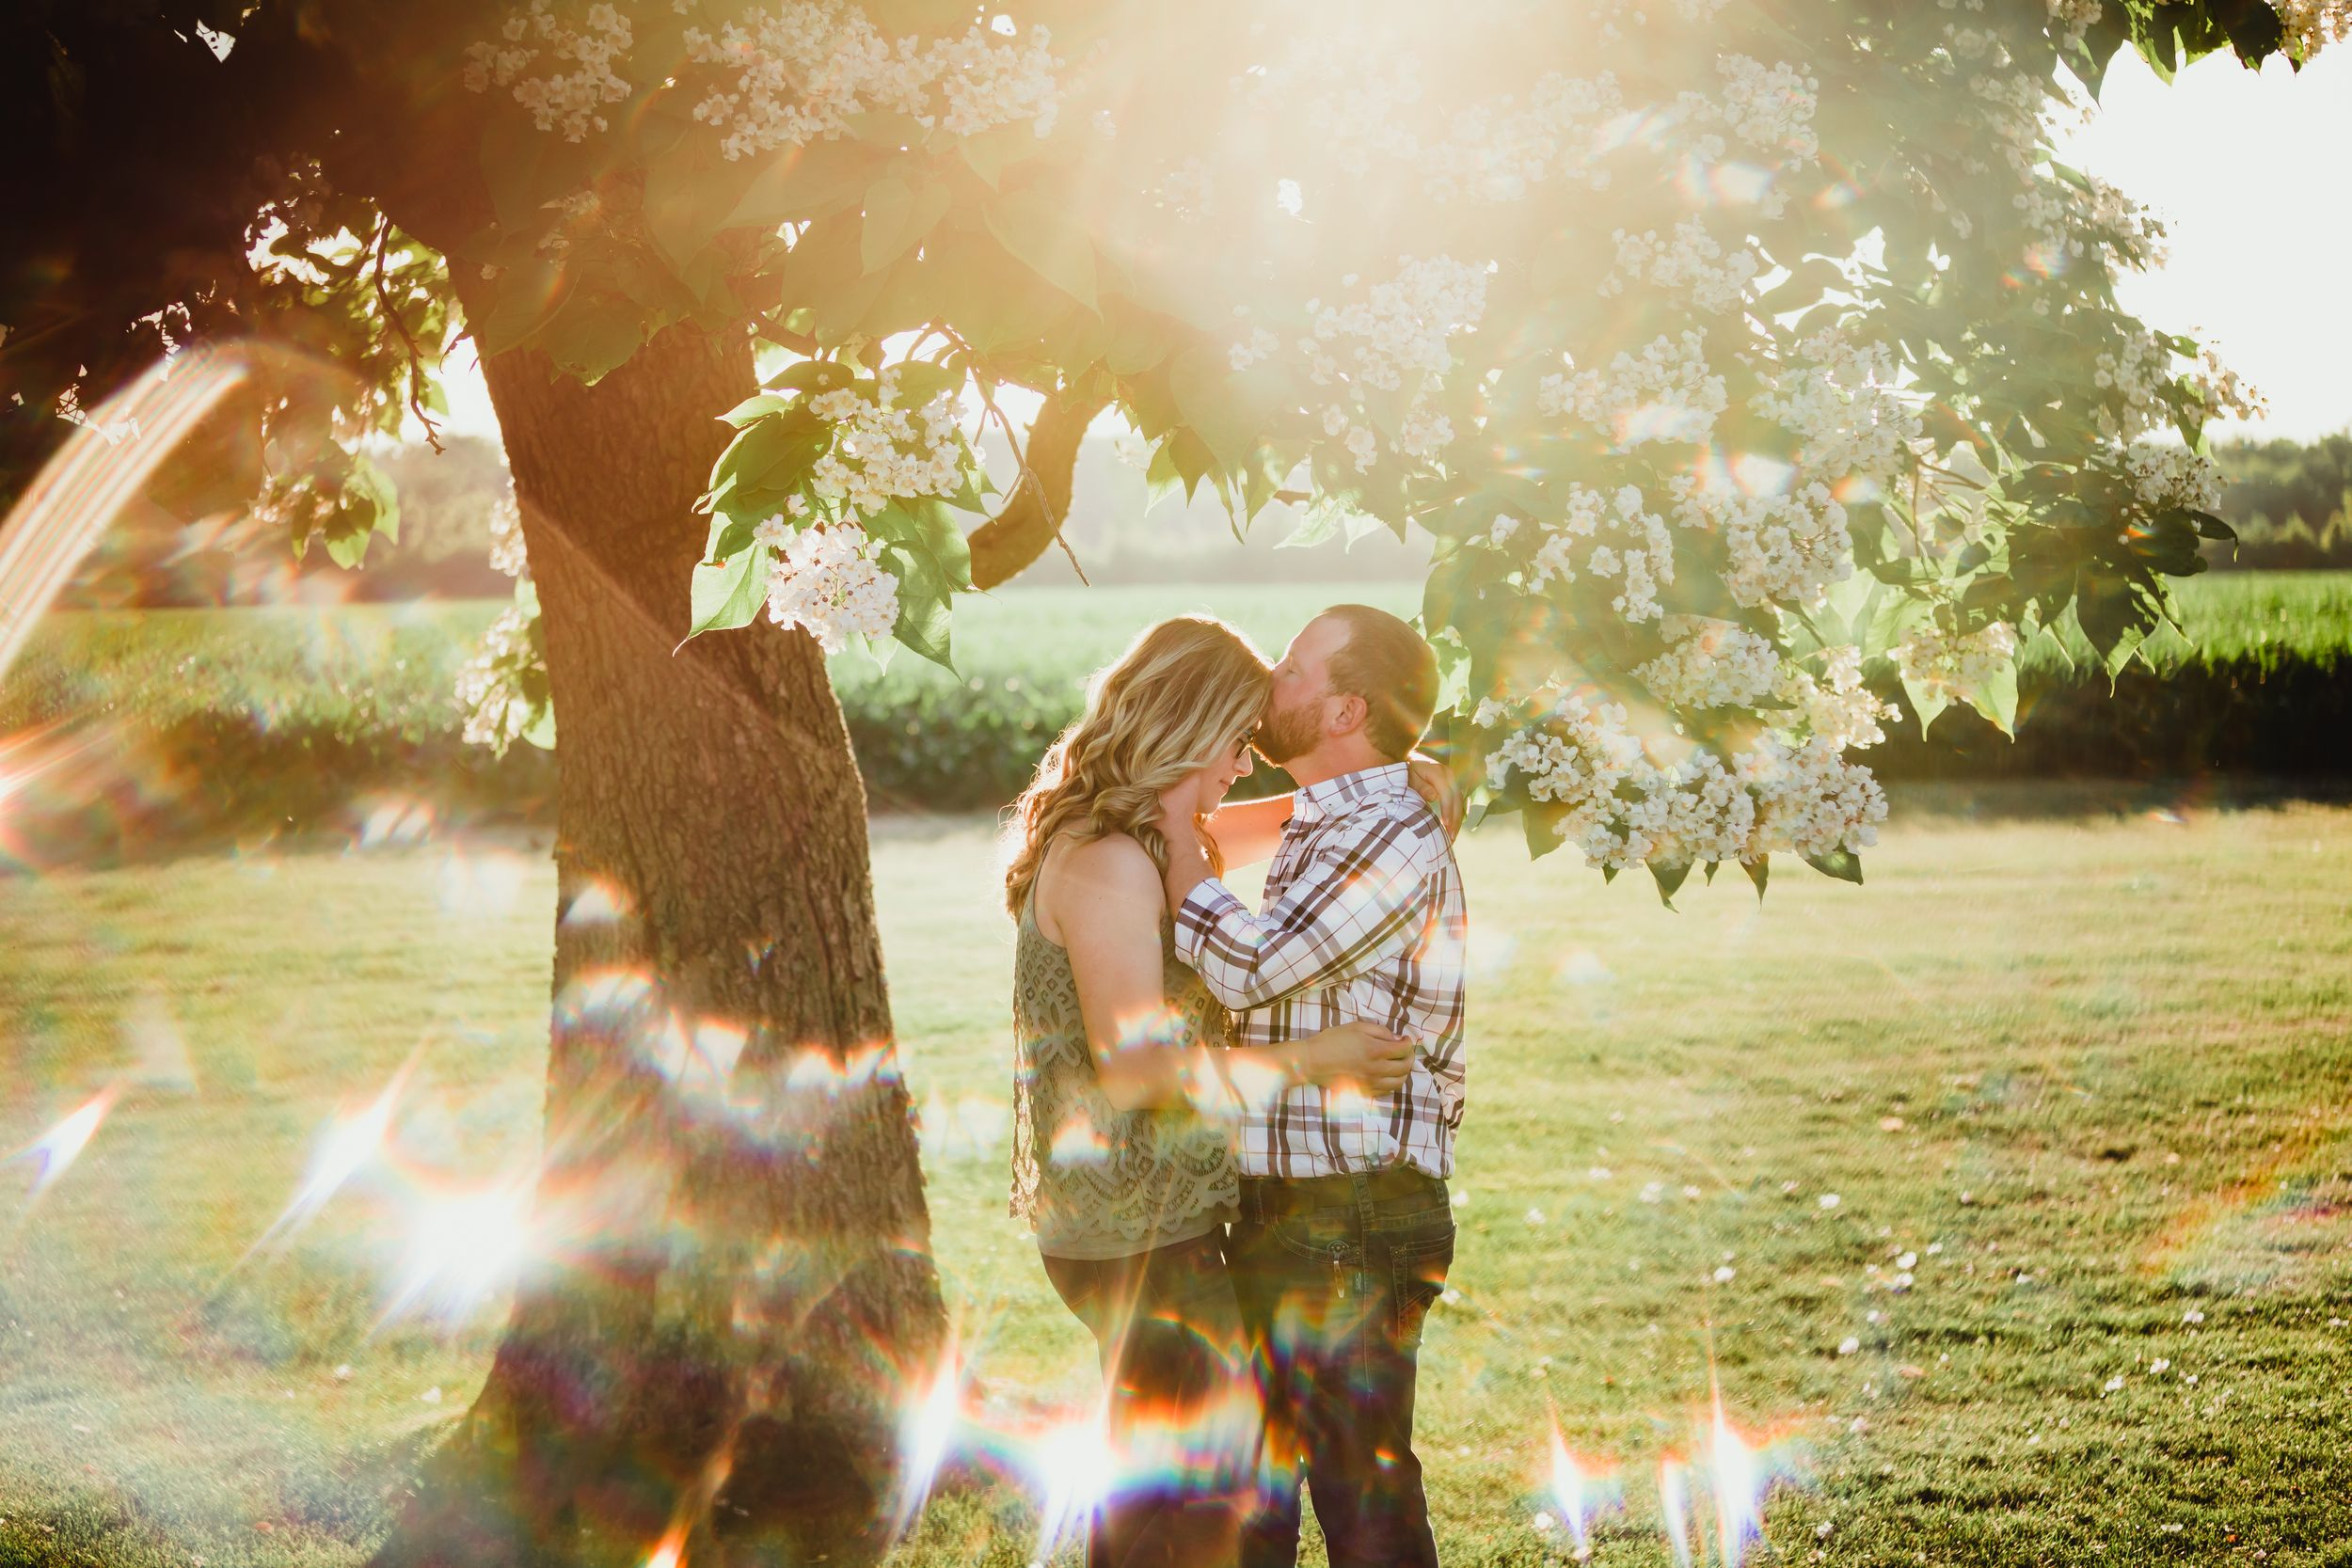 A man kissing a woman's forehead in front of a flowering tree. A prism creates bright little rainbows around them.